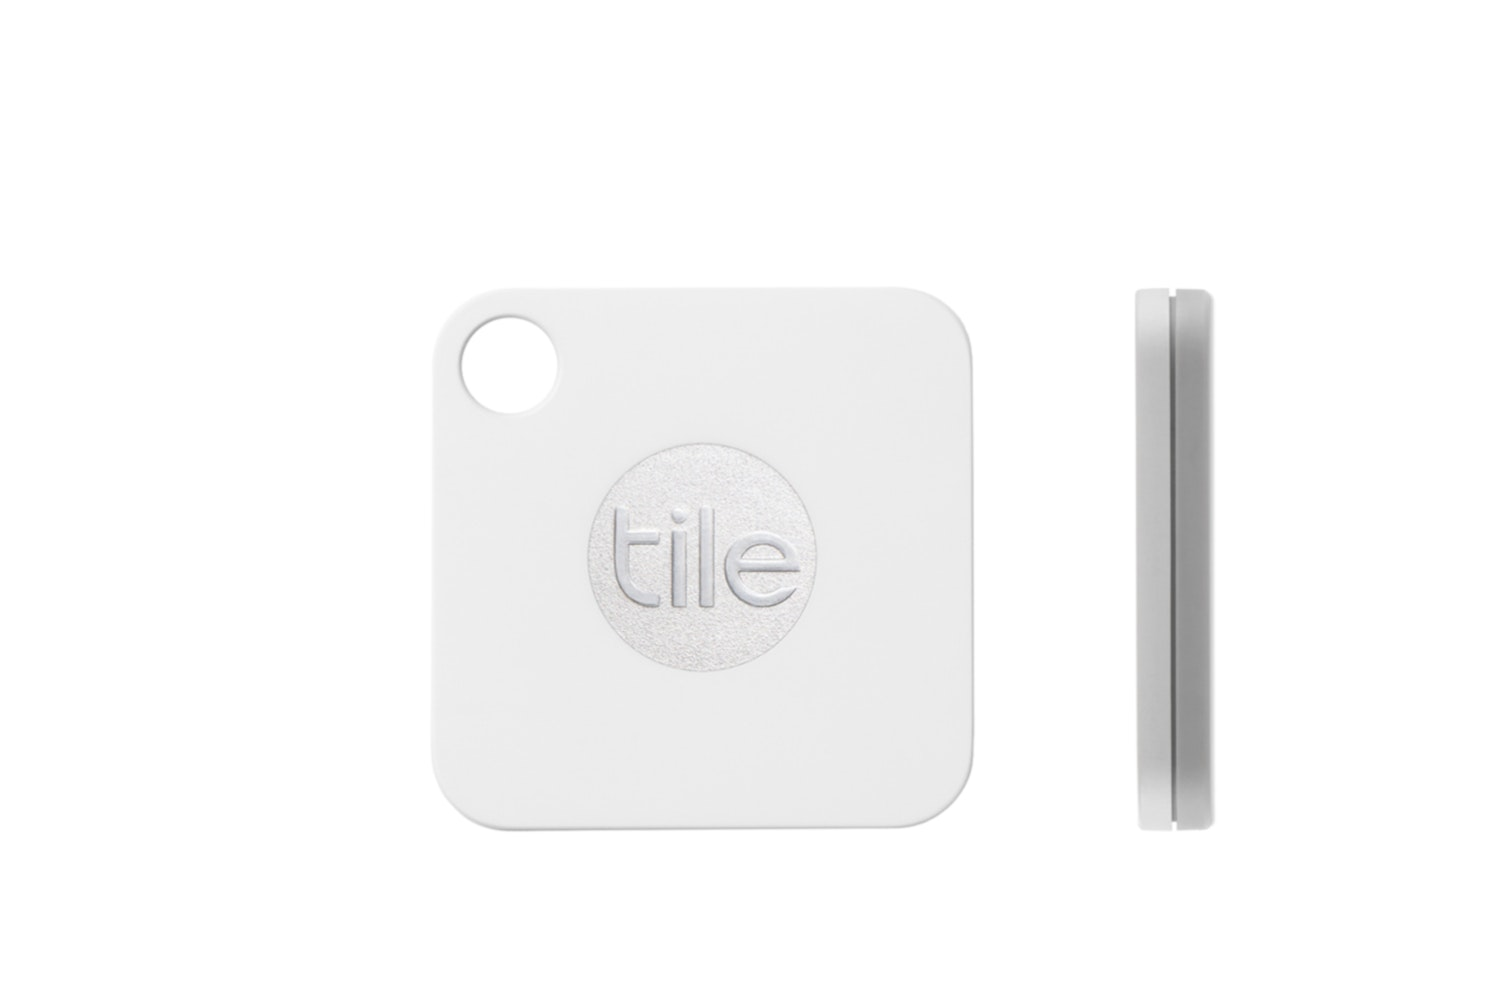 Tile Mate | 4 Pack